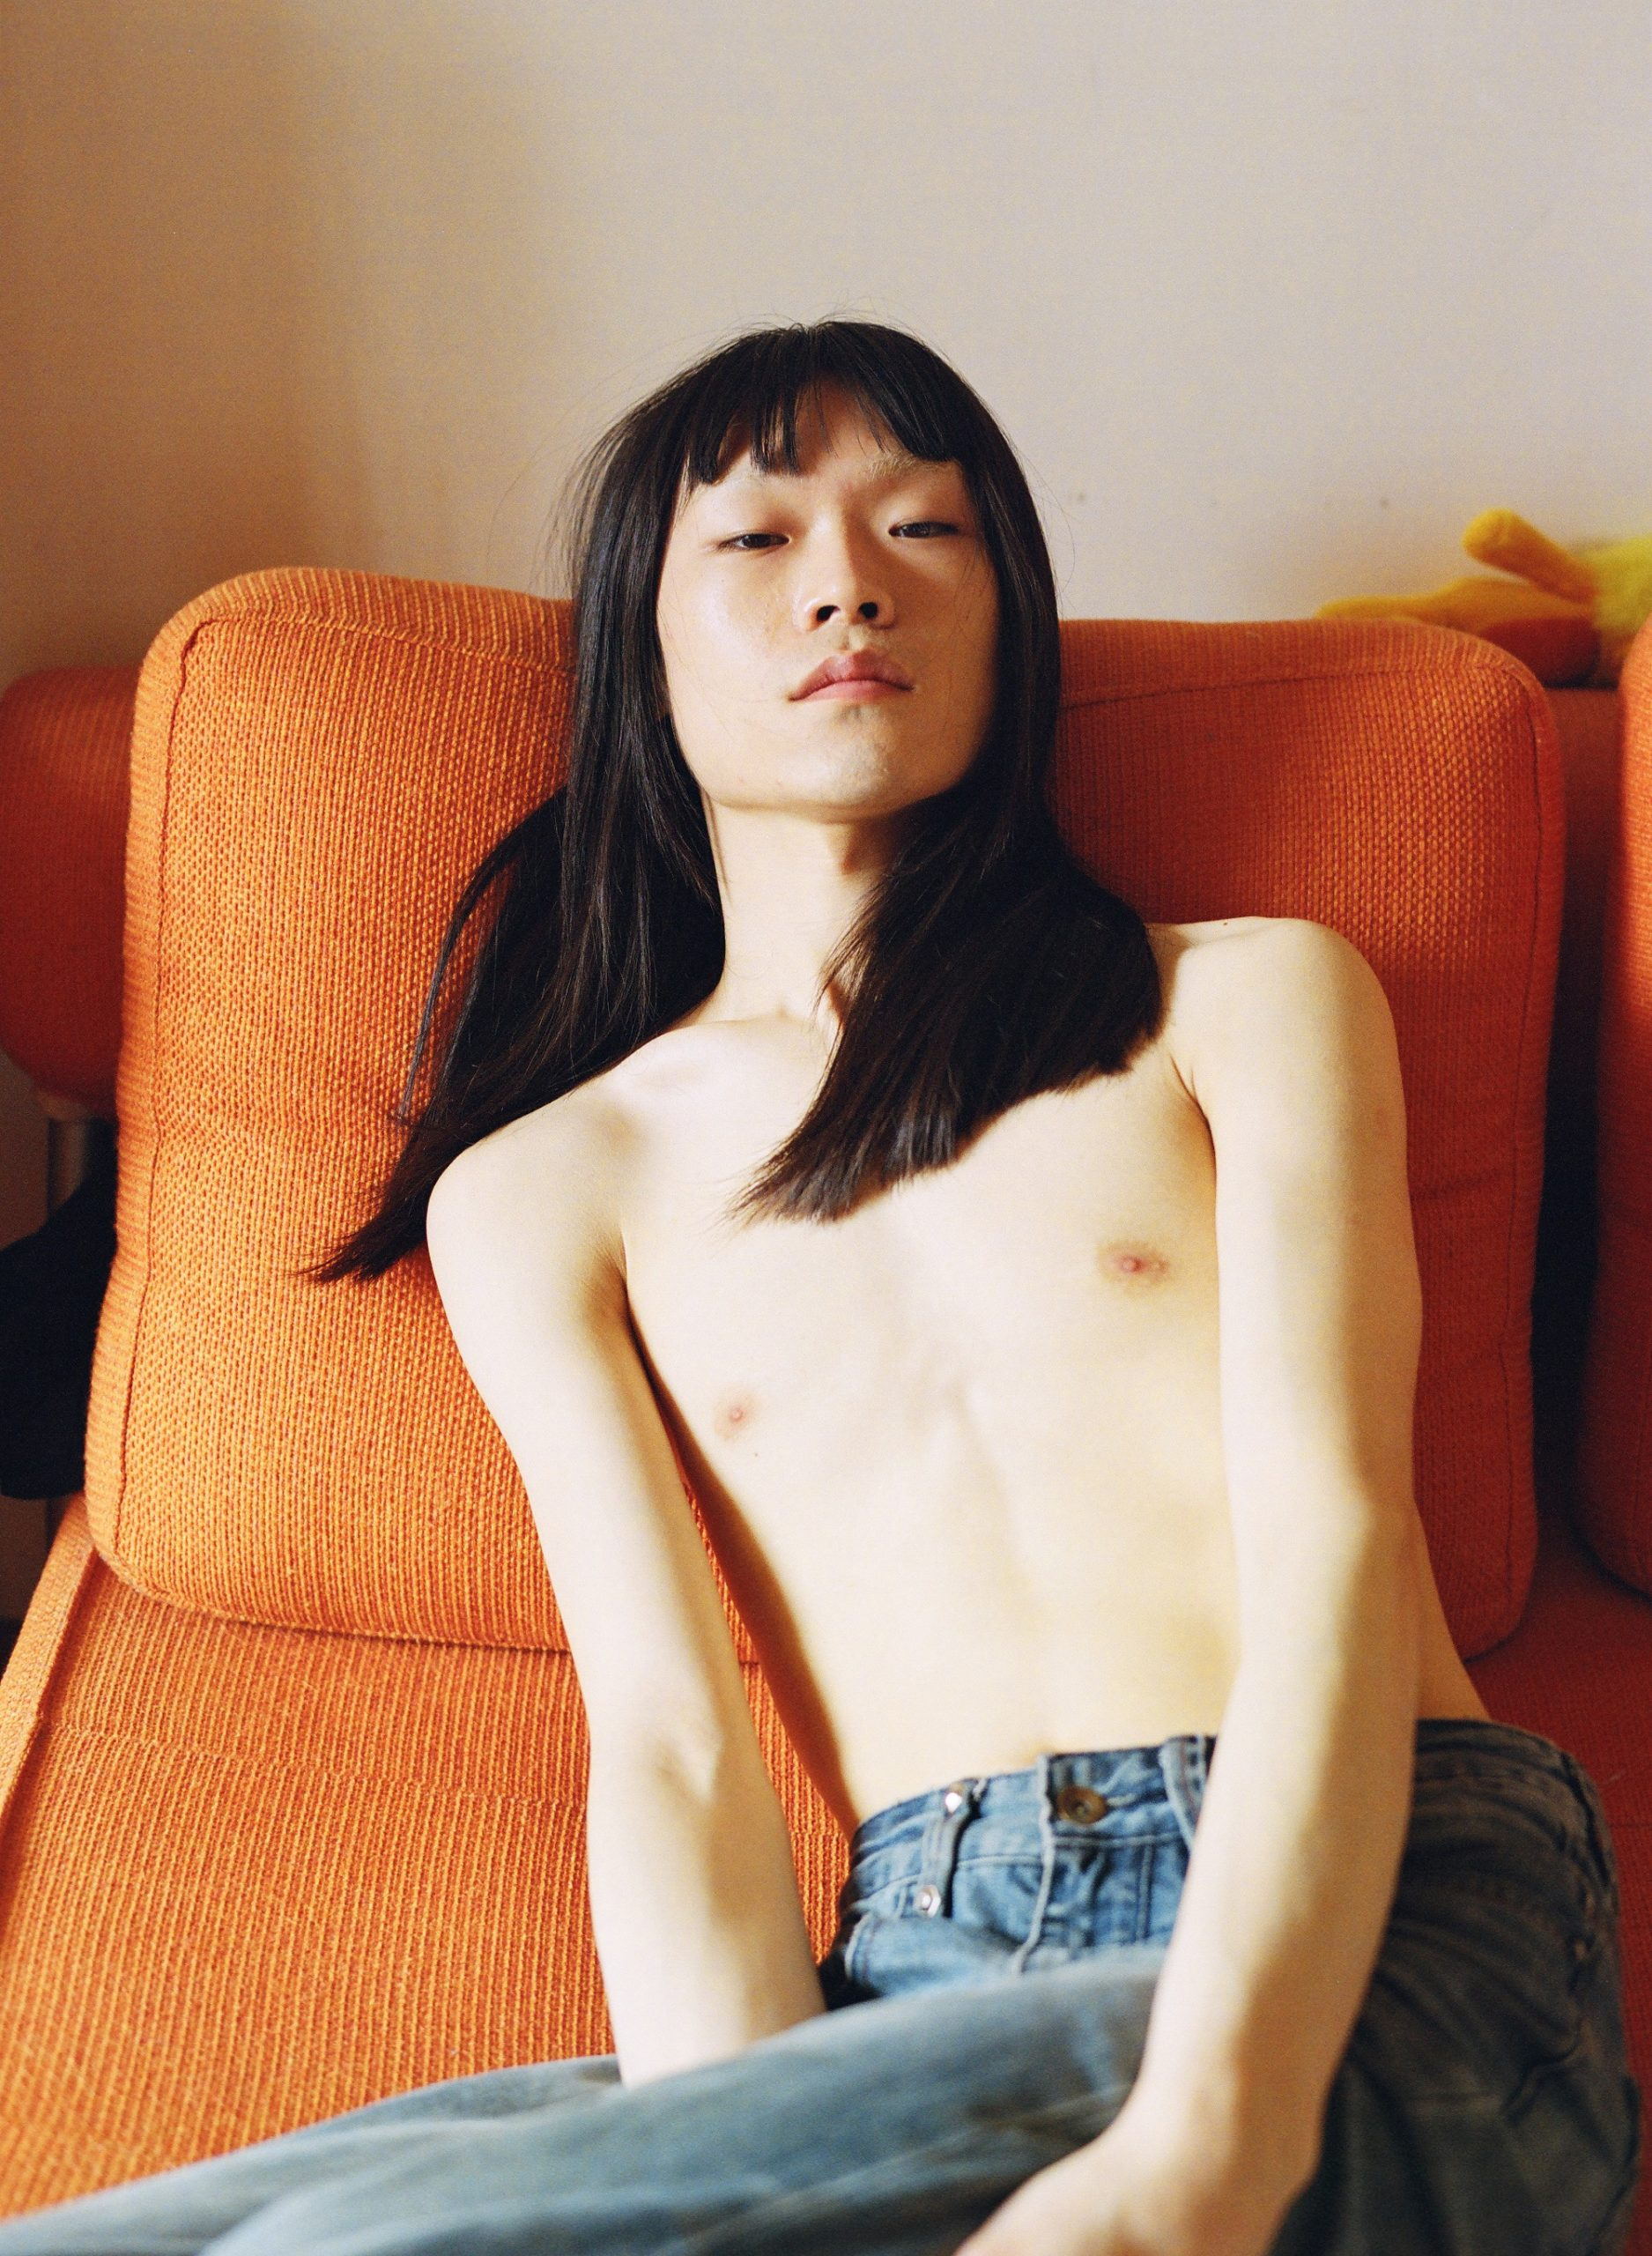 Luo Yang, Xiao Jie, 2019. From the series Youth. Courtesy the artist